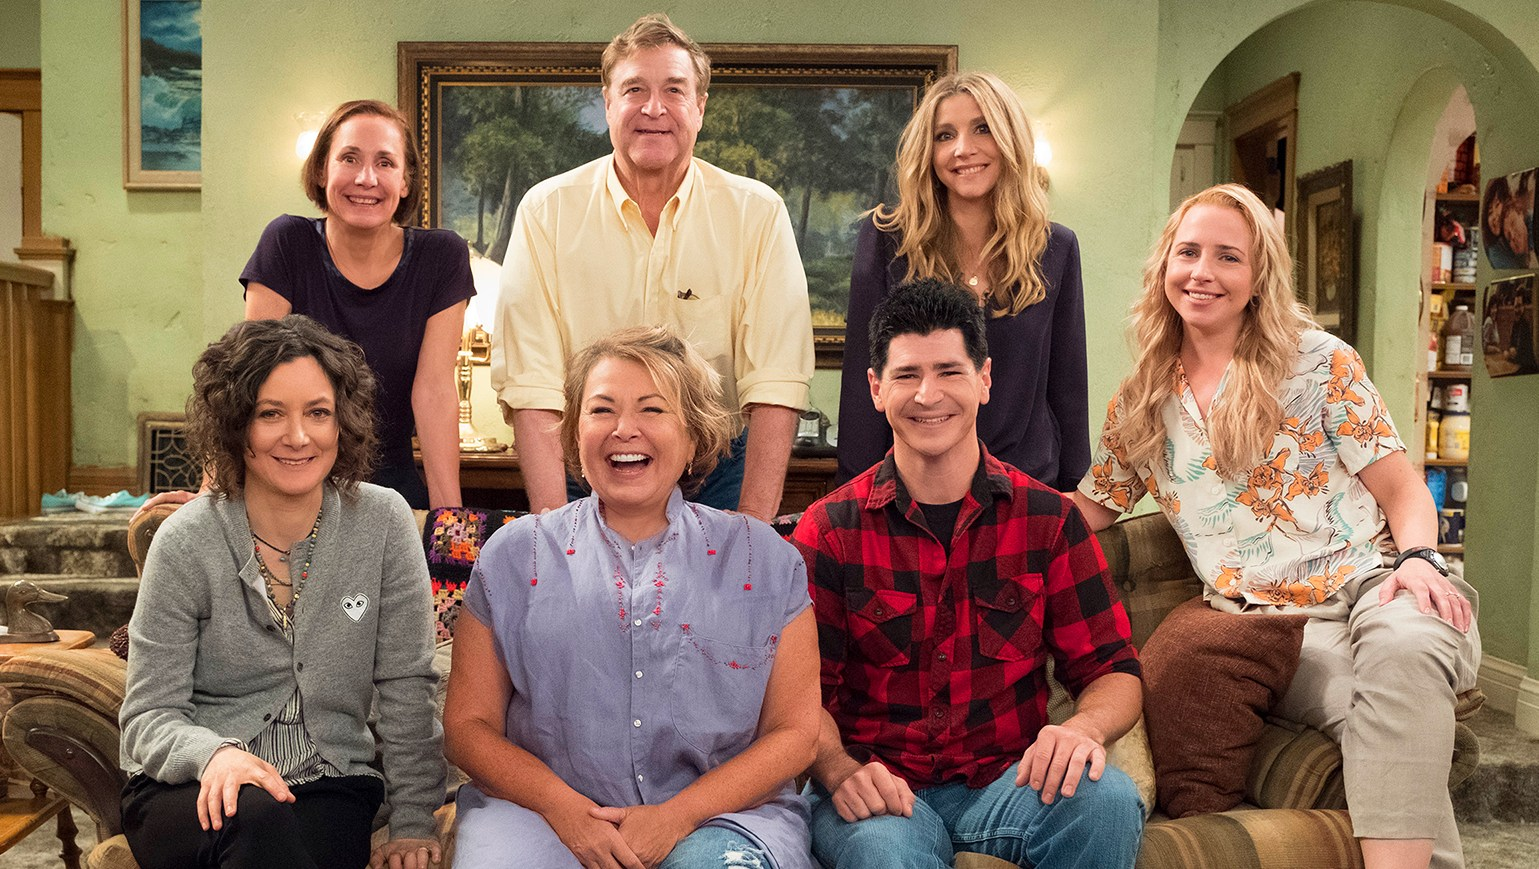 roseanne return cast